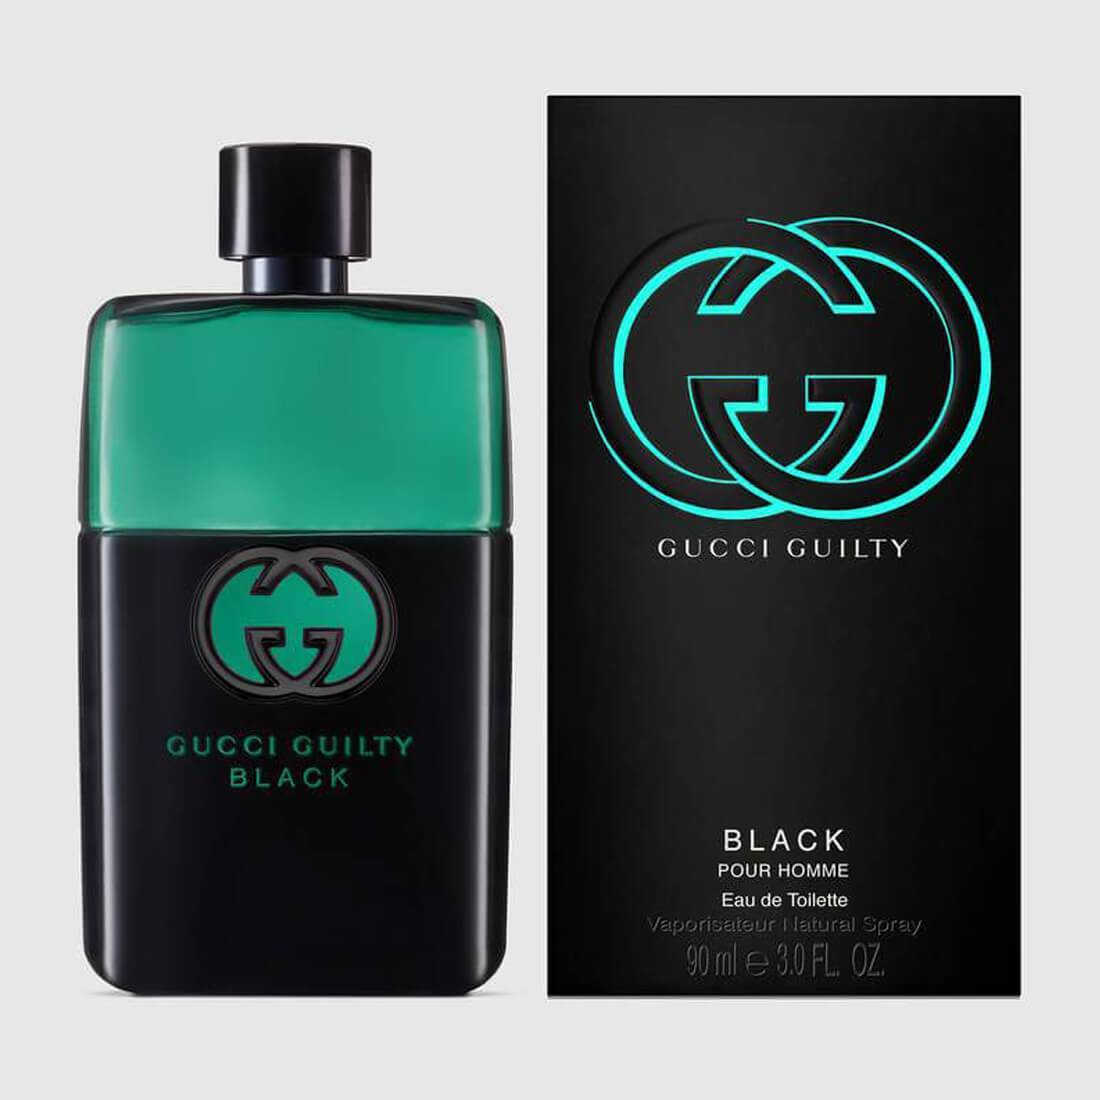 Gucci Guilty Black Pour Homme Perfume For Men